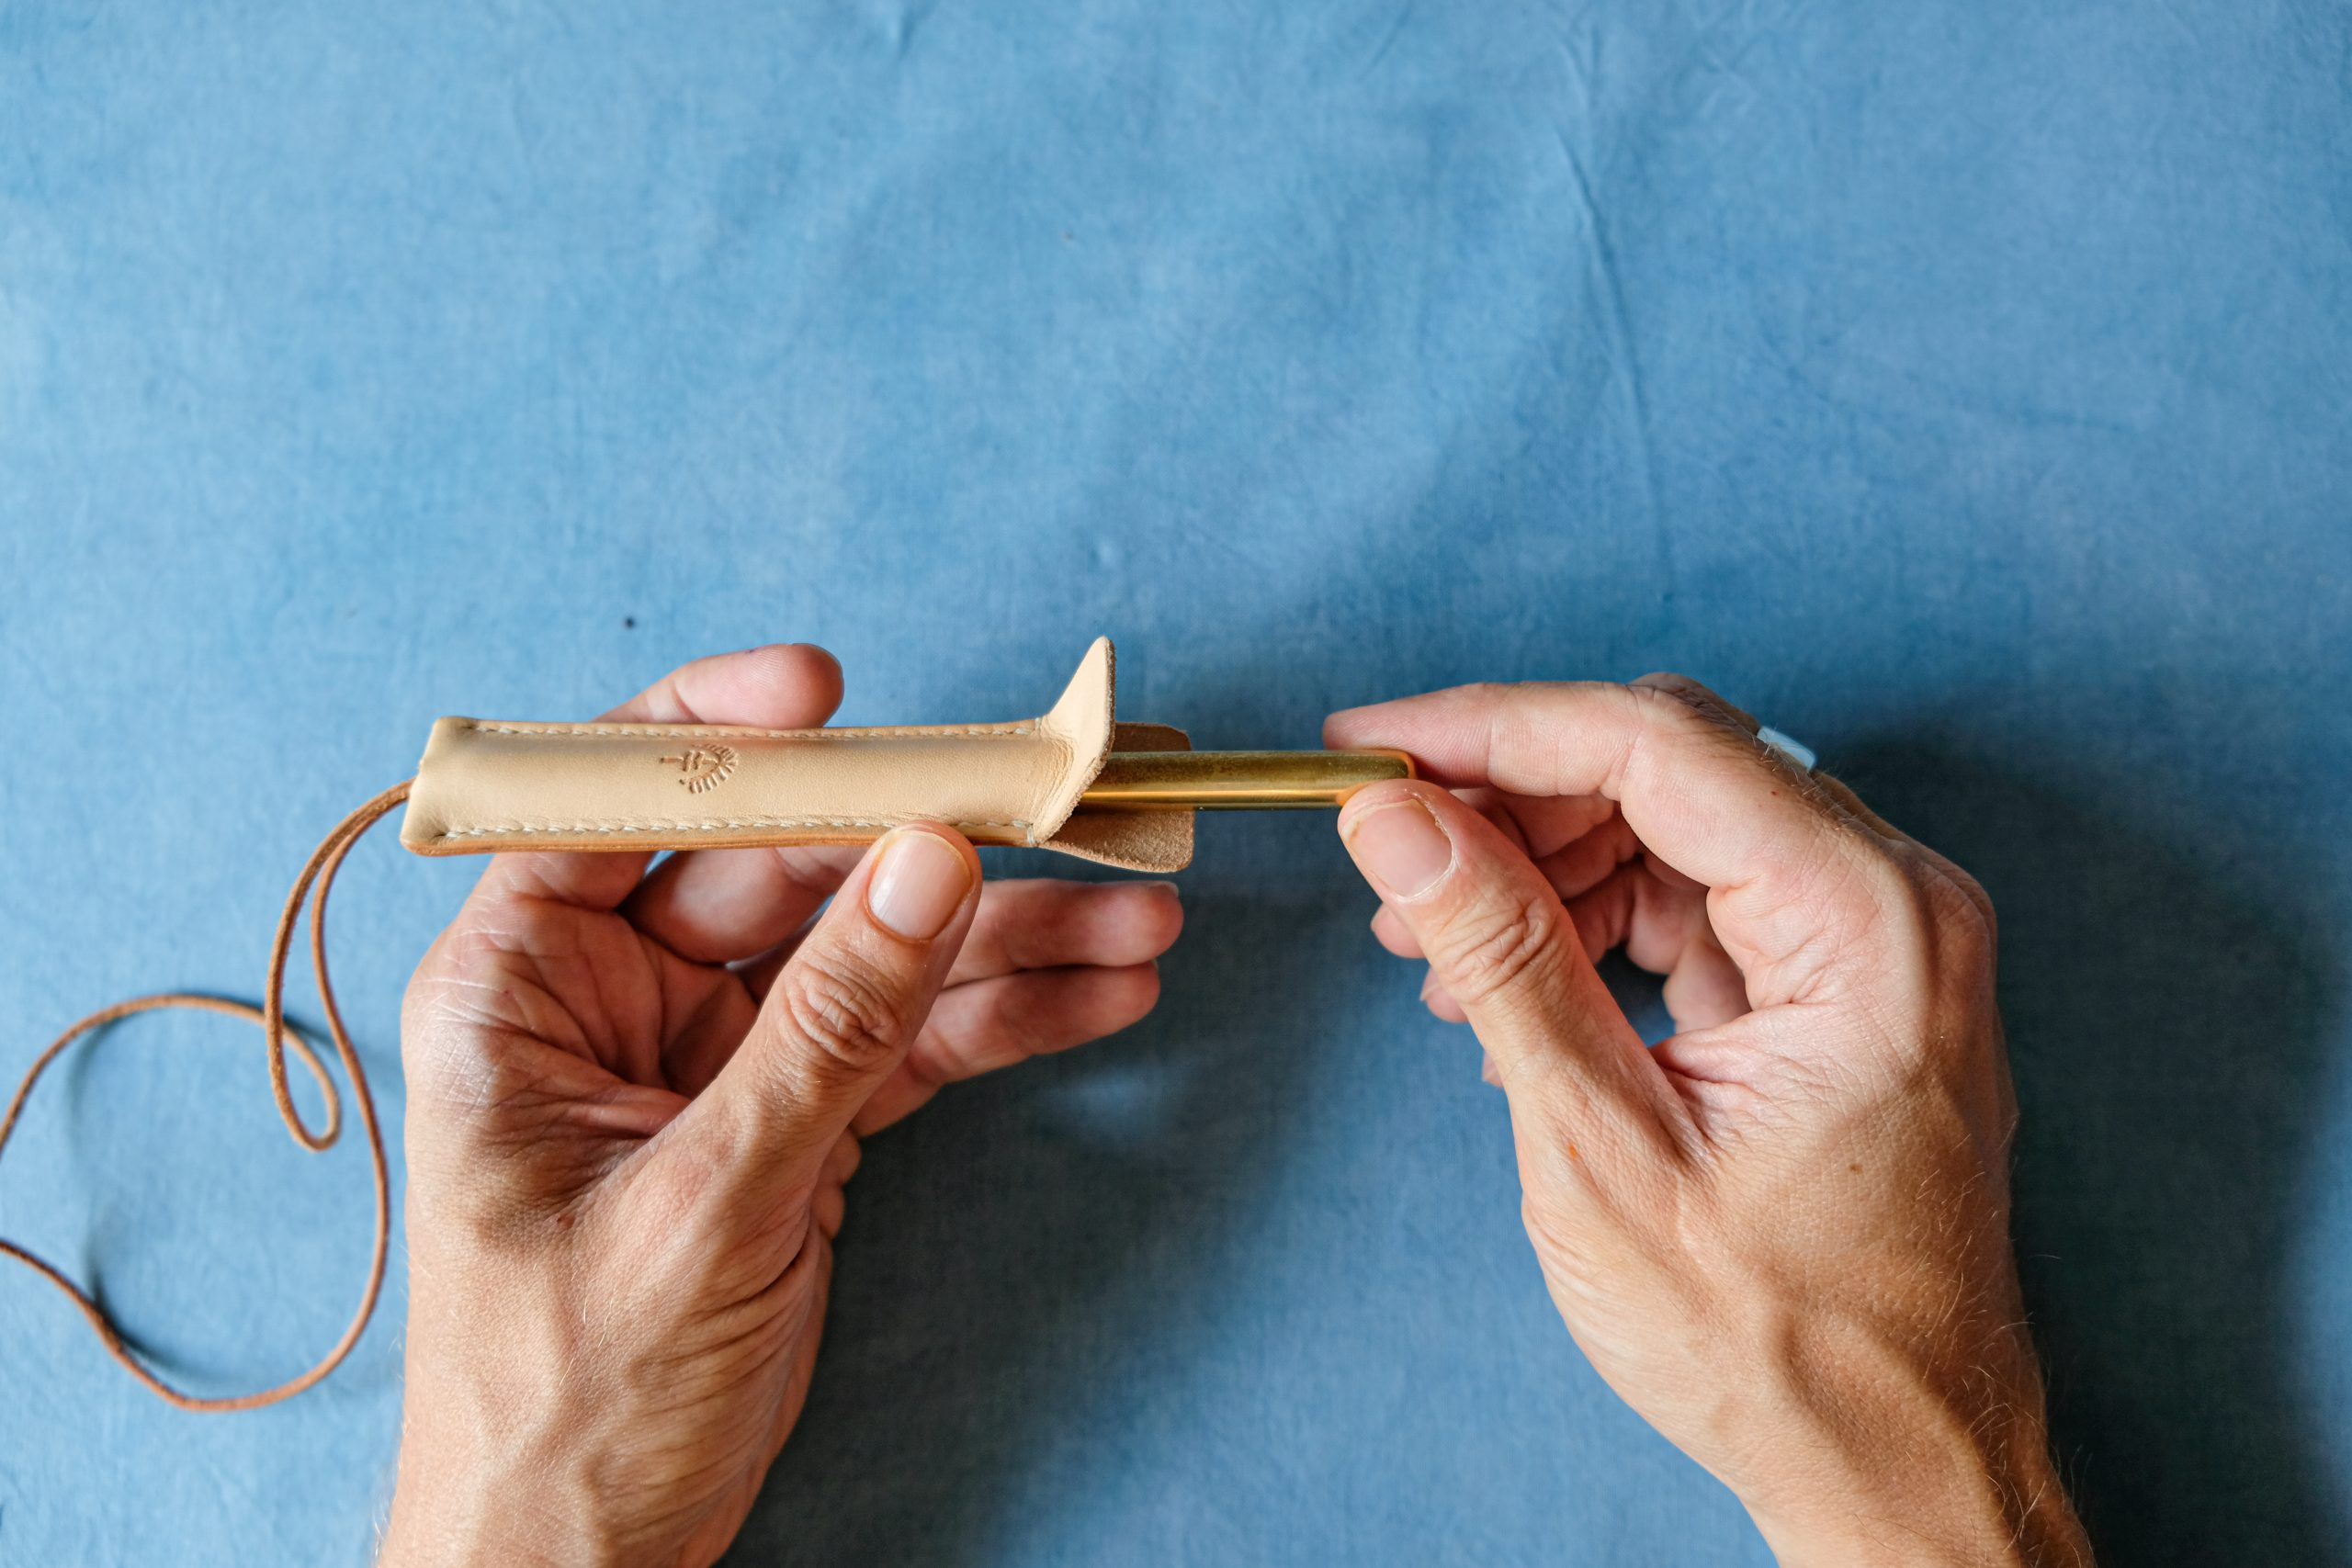 lerif designs leather pen etuis demo pulling out brass pen on indigo background